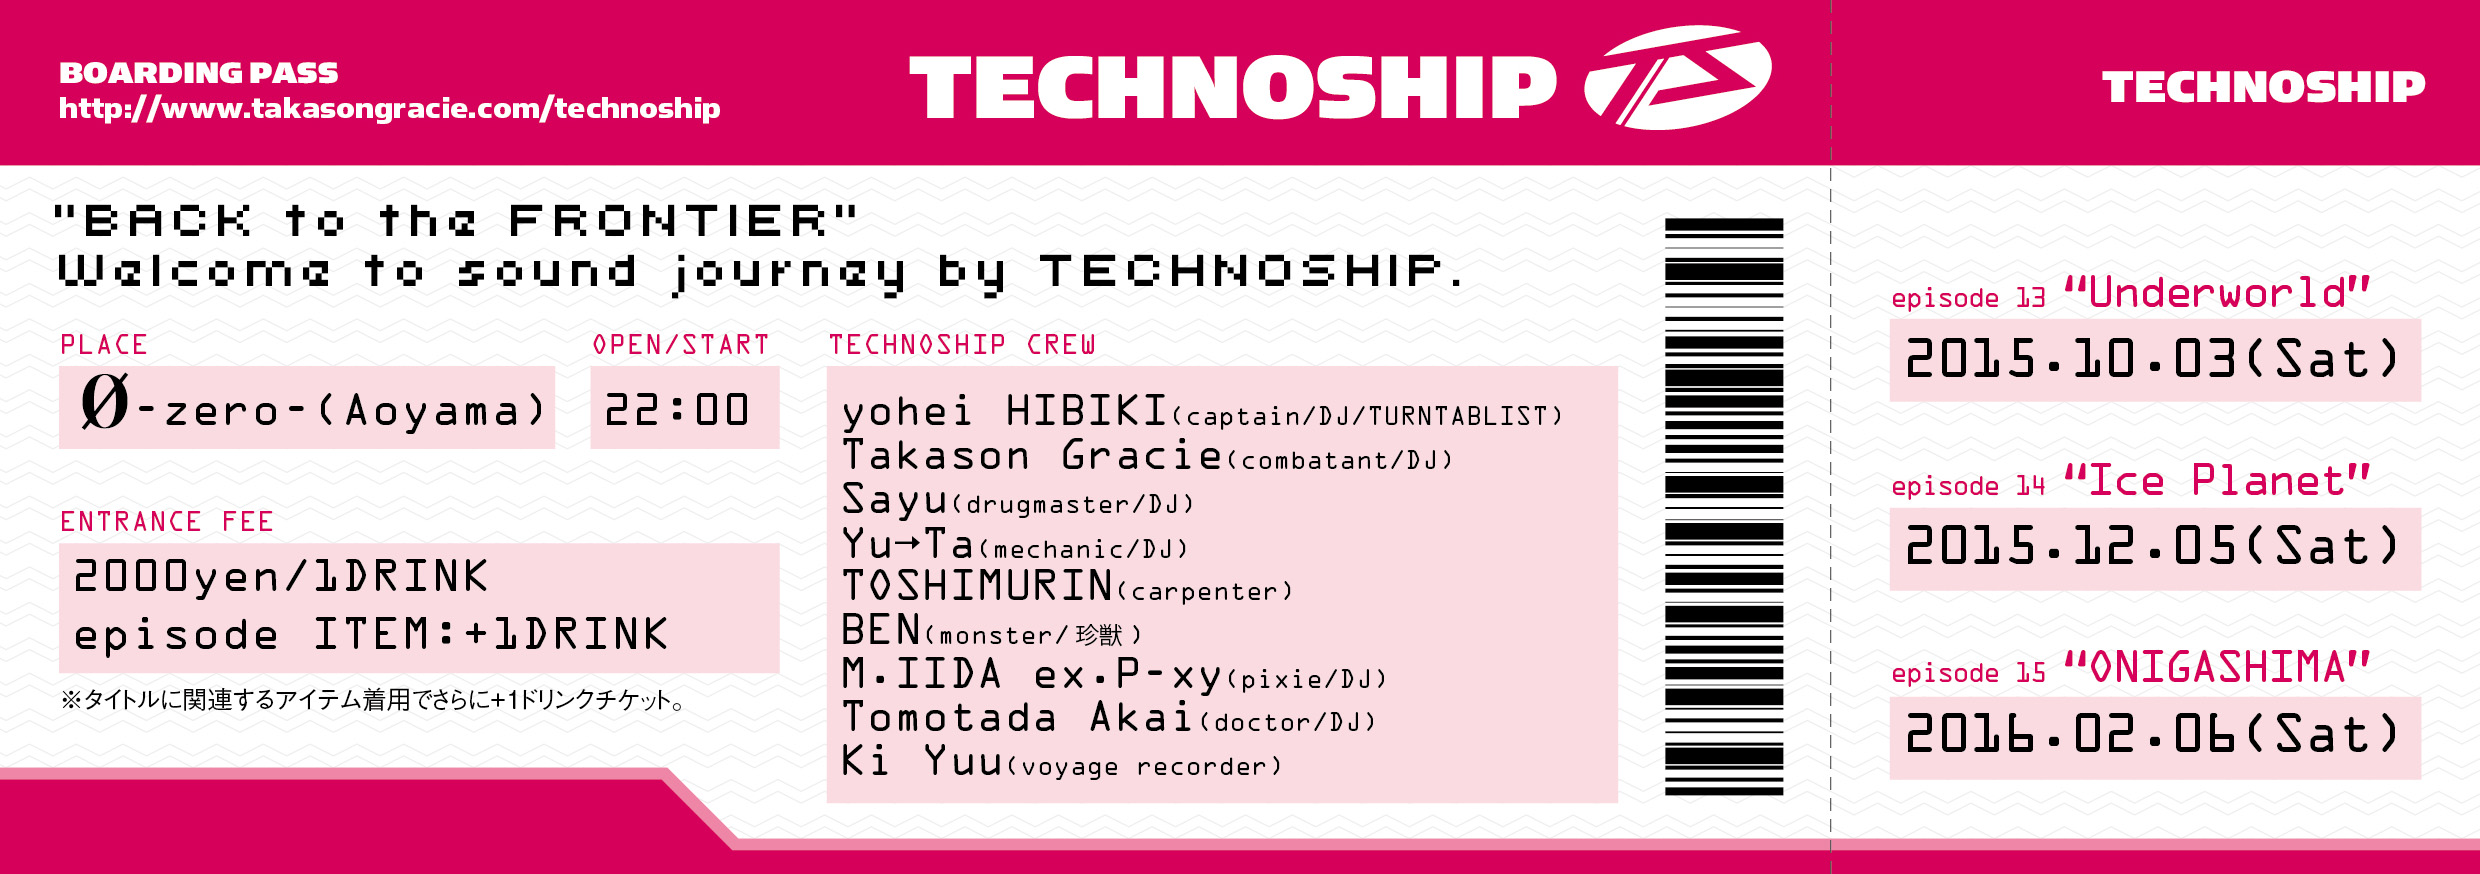 "WELCOME TO SOUND JOURNEY BY TECHNOSHIP.  Next…  Title … episode15 ""ONIGASHIMA"""